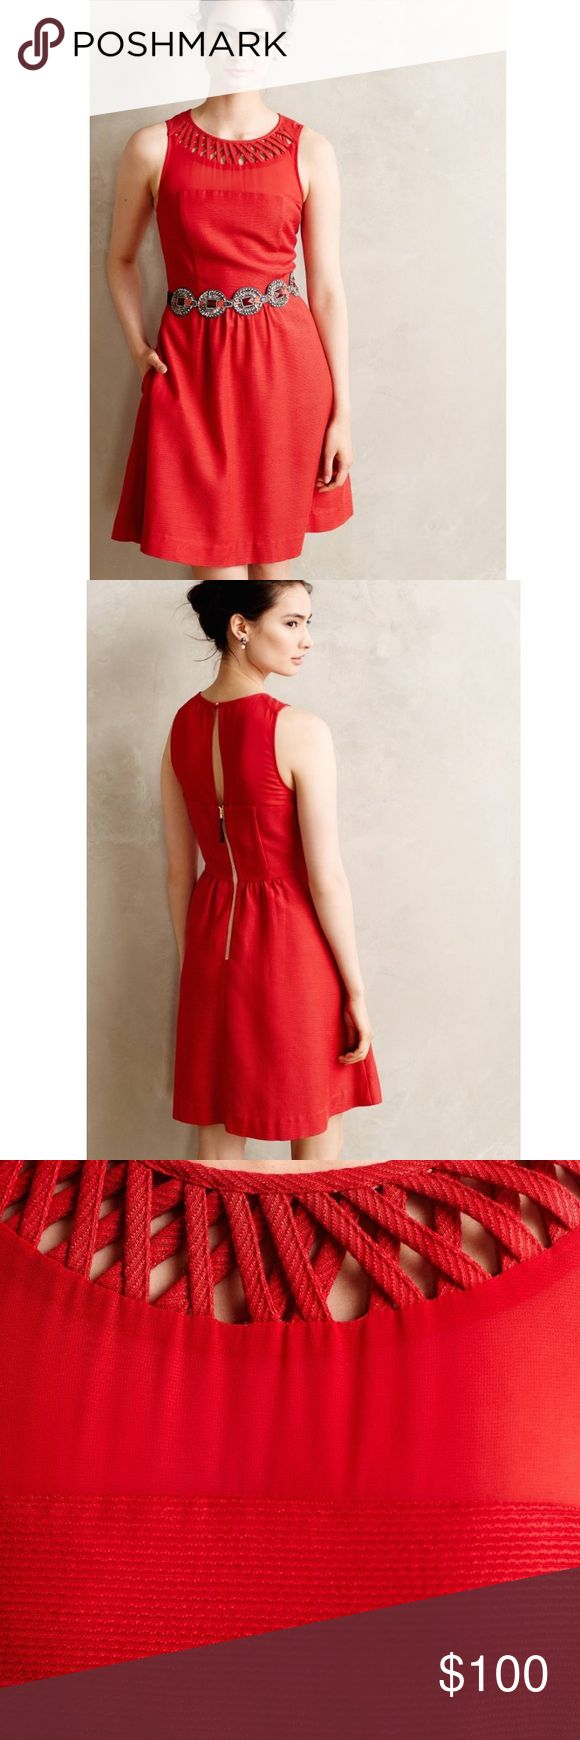 "[Anthropologie] Maeve Lattice Red Dress Dress does not come with belt. Belt is sold separately.   Armpit to armpit 17.75""   Style No. 4130580814405 ; Color Code:   Every closet needs evening backup - simple silhouettes that can be reinvented with a switch of accessories - like this flared, textured dress from Maeve.   By Maeve  Back zip  Cotton, viscose, polyester  Machine wash  Regular falls 36"" from shoulder Anthropologie Dresses Mini"